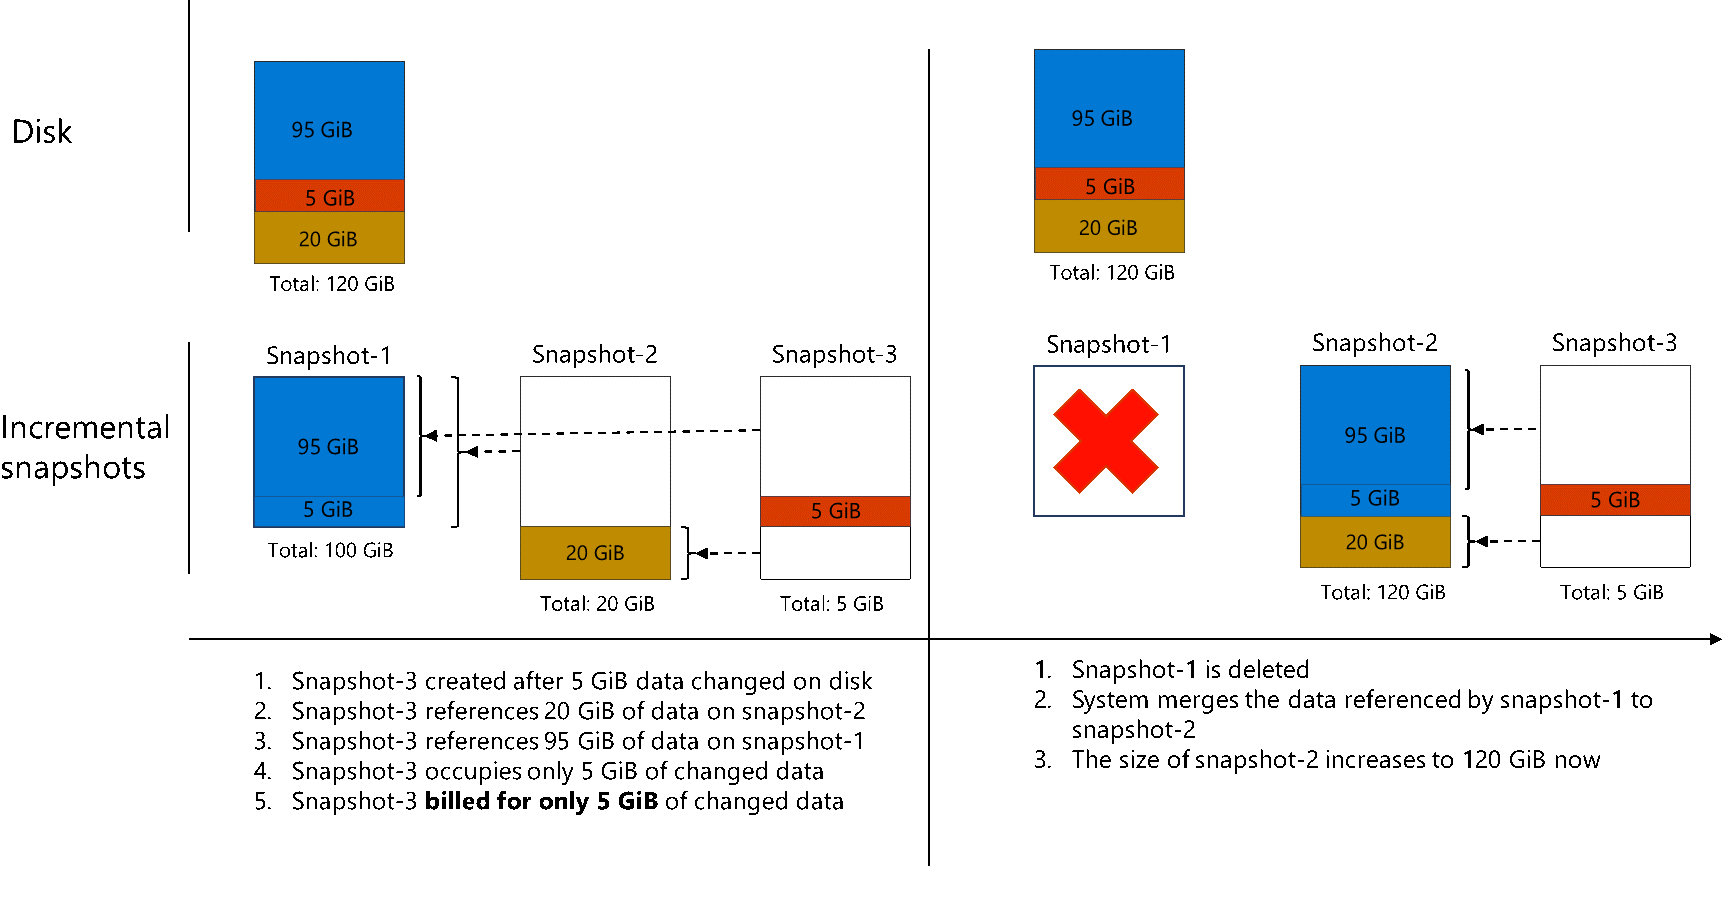 This diagram shows what happens when 5 GiB of data is modified on the disk before you take the third incremental snapshot. It also shows what happens when the first snapshot is deleted.